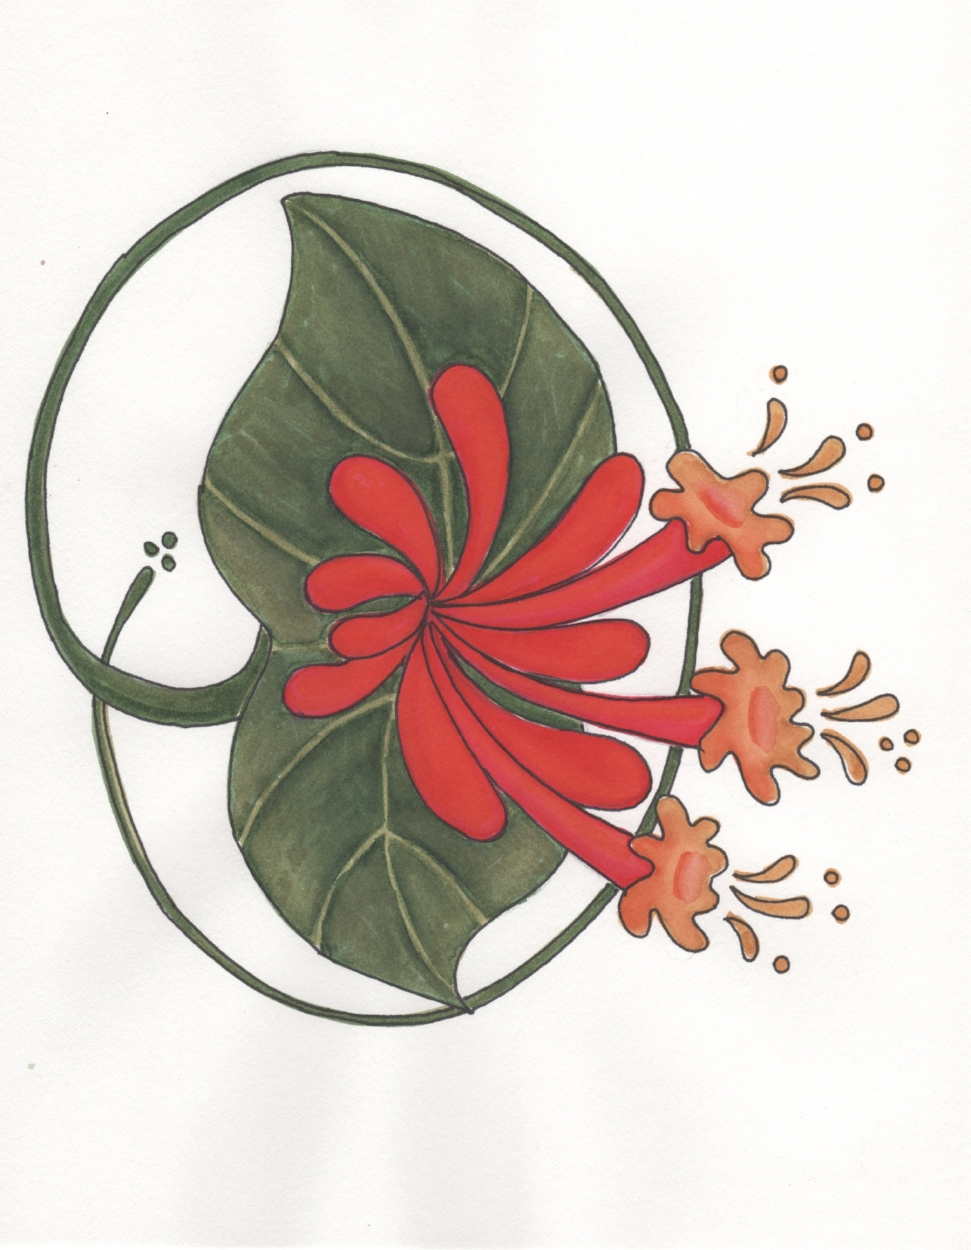 Orange  Honeysuckle (Lonicera ciliosa) logo by Vicki Brigden